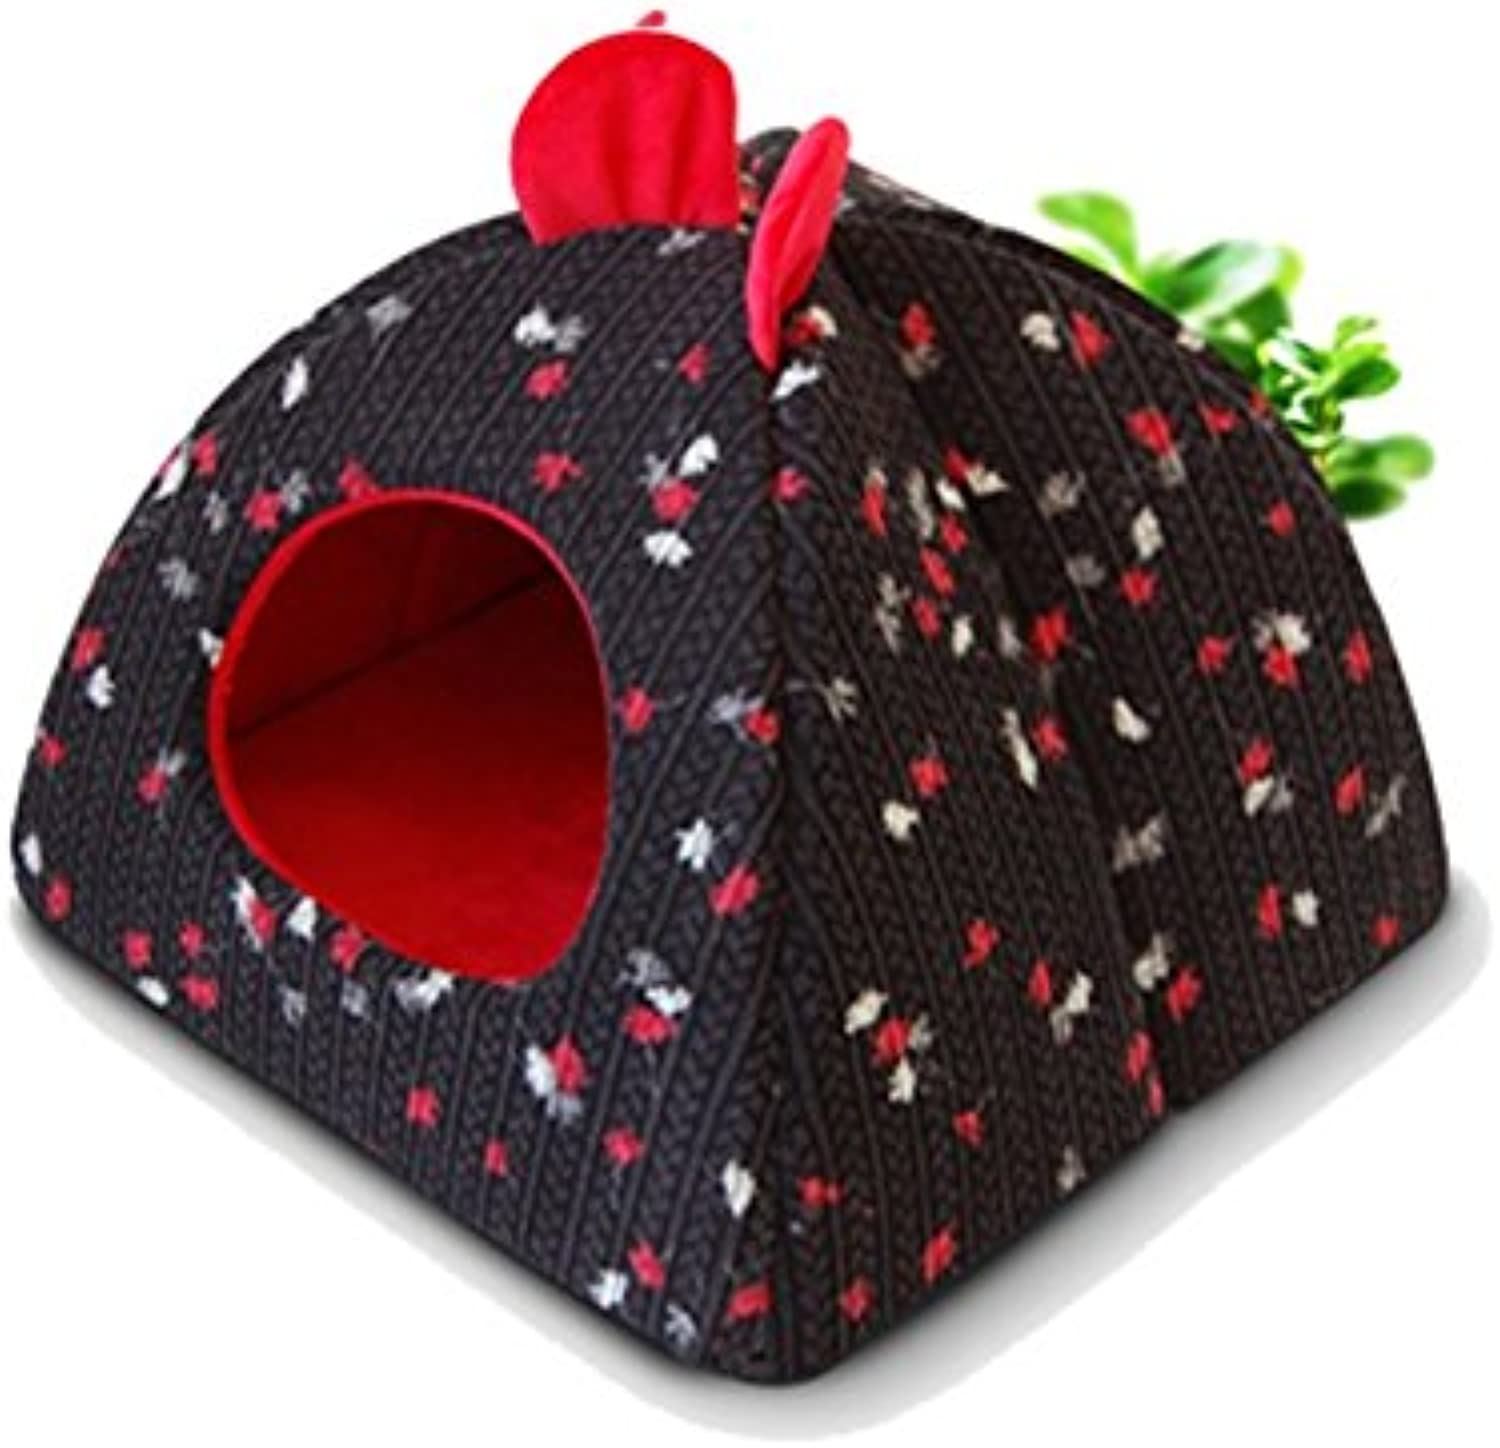 MAL Kennel cat litter dog house cat house pet cute tent yurt kennel Teddy bluee Cat perspective (color  black) (Size   S)